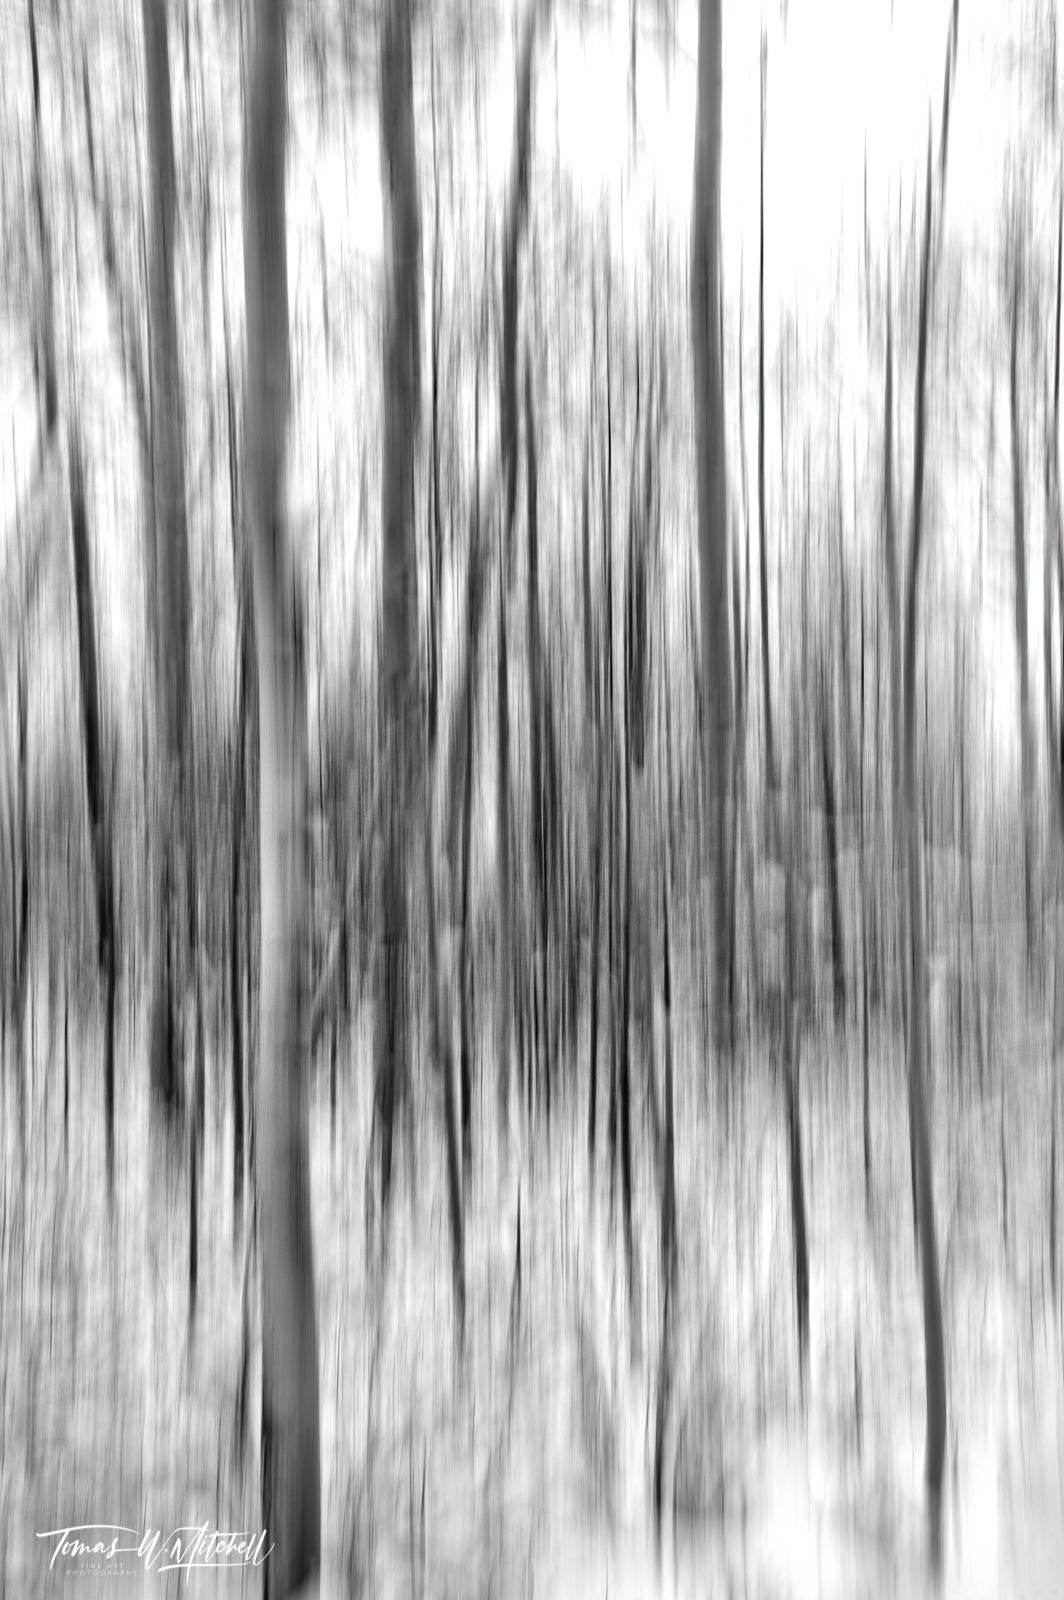 UINTA-WASATCH-CACHE NATIONAL FOREST, UTAH, limited edition, fine art, prints, winter, aspen trees, snow, blur snowflakes, photograph, abstract, black and white, photo